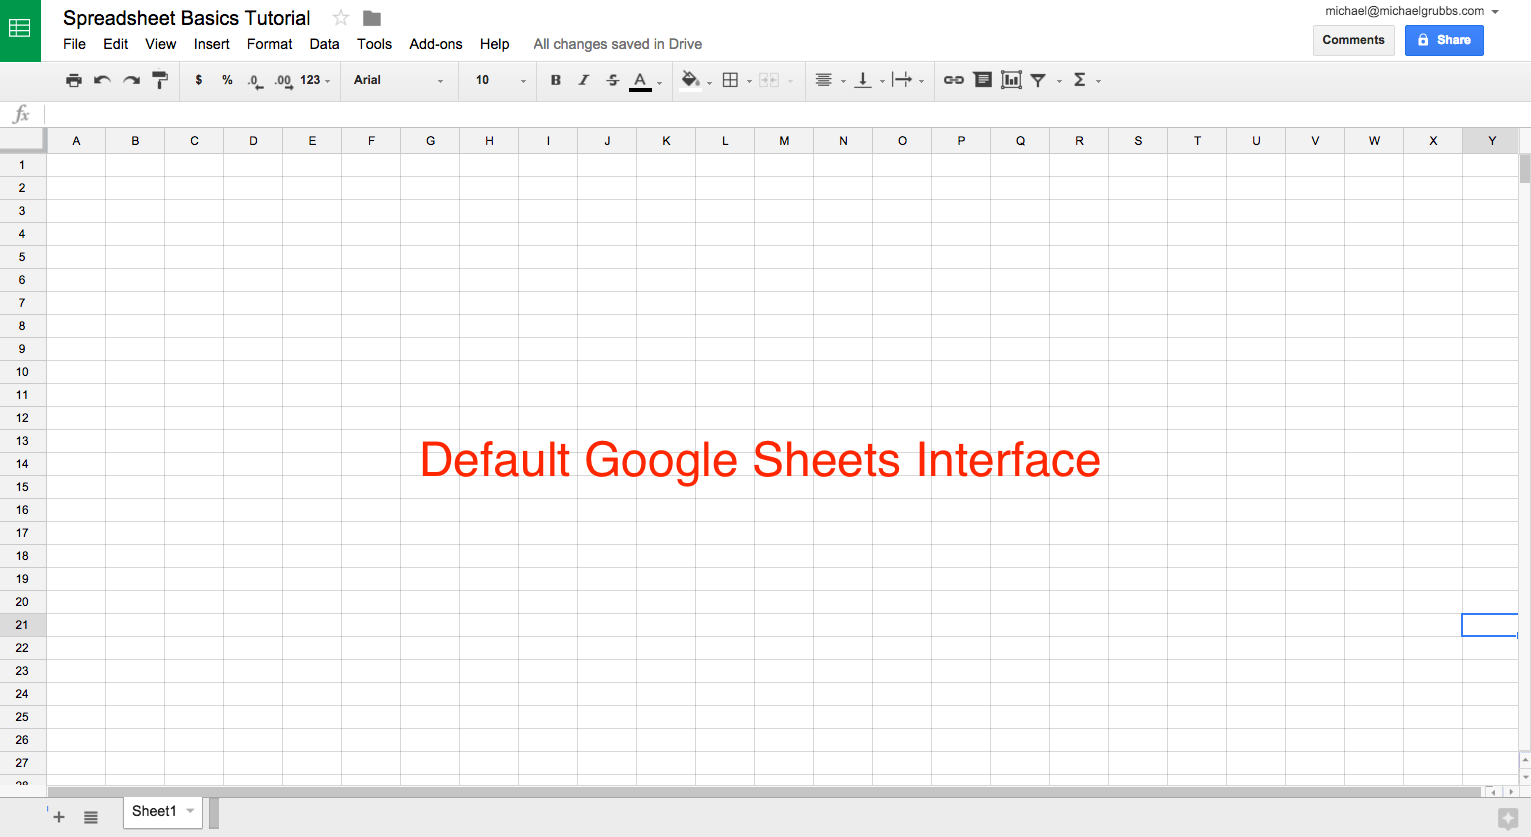 How To Open Google Spreadsheet Inside Google Sheets 101: The Beginner's Guide To Online Spreadsheets  The